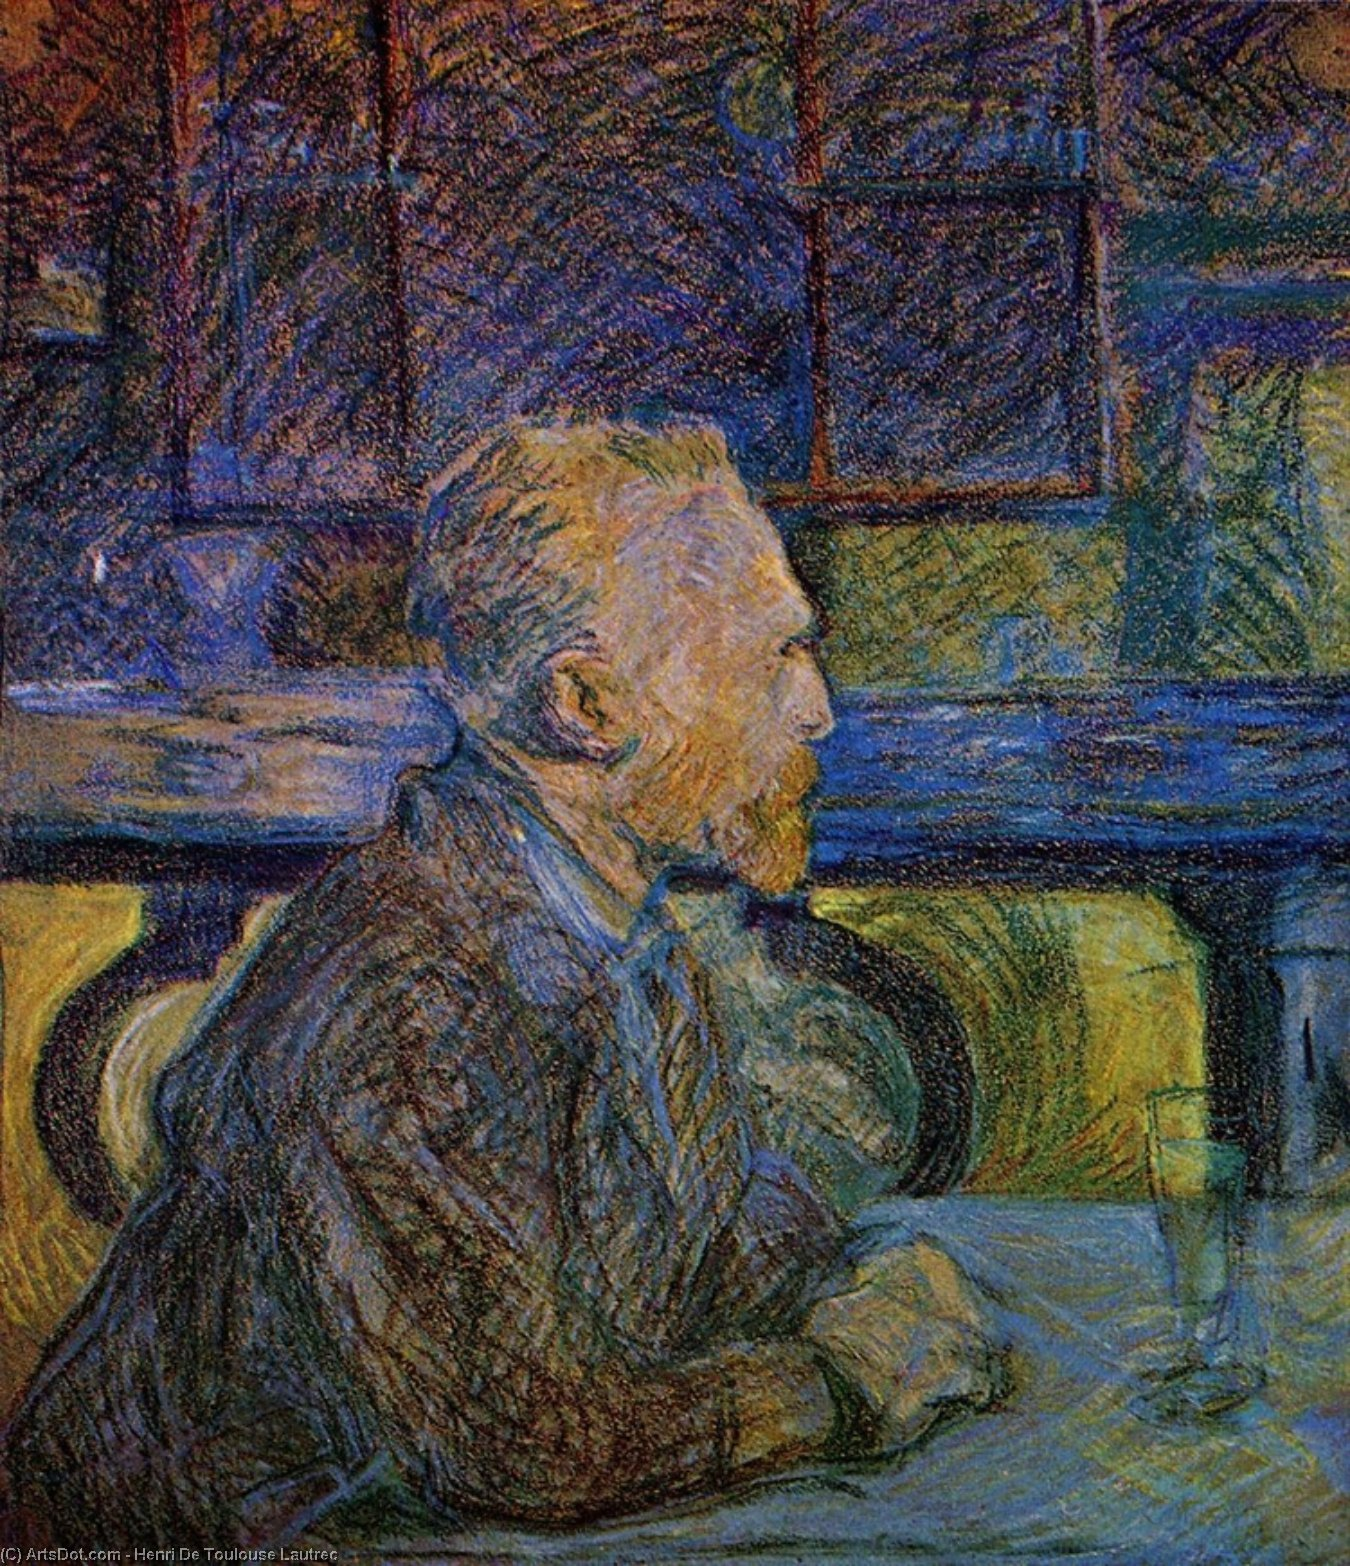 Vincent van Gogh, Oil On Panel by Henri De Toulouse Lautrec (1864-1901, France)